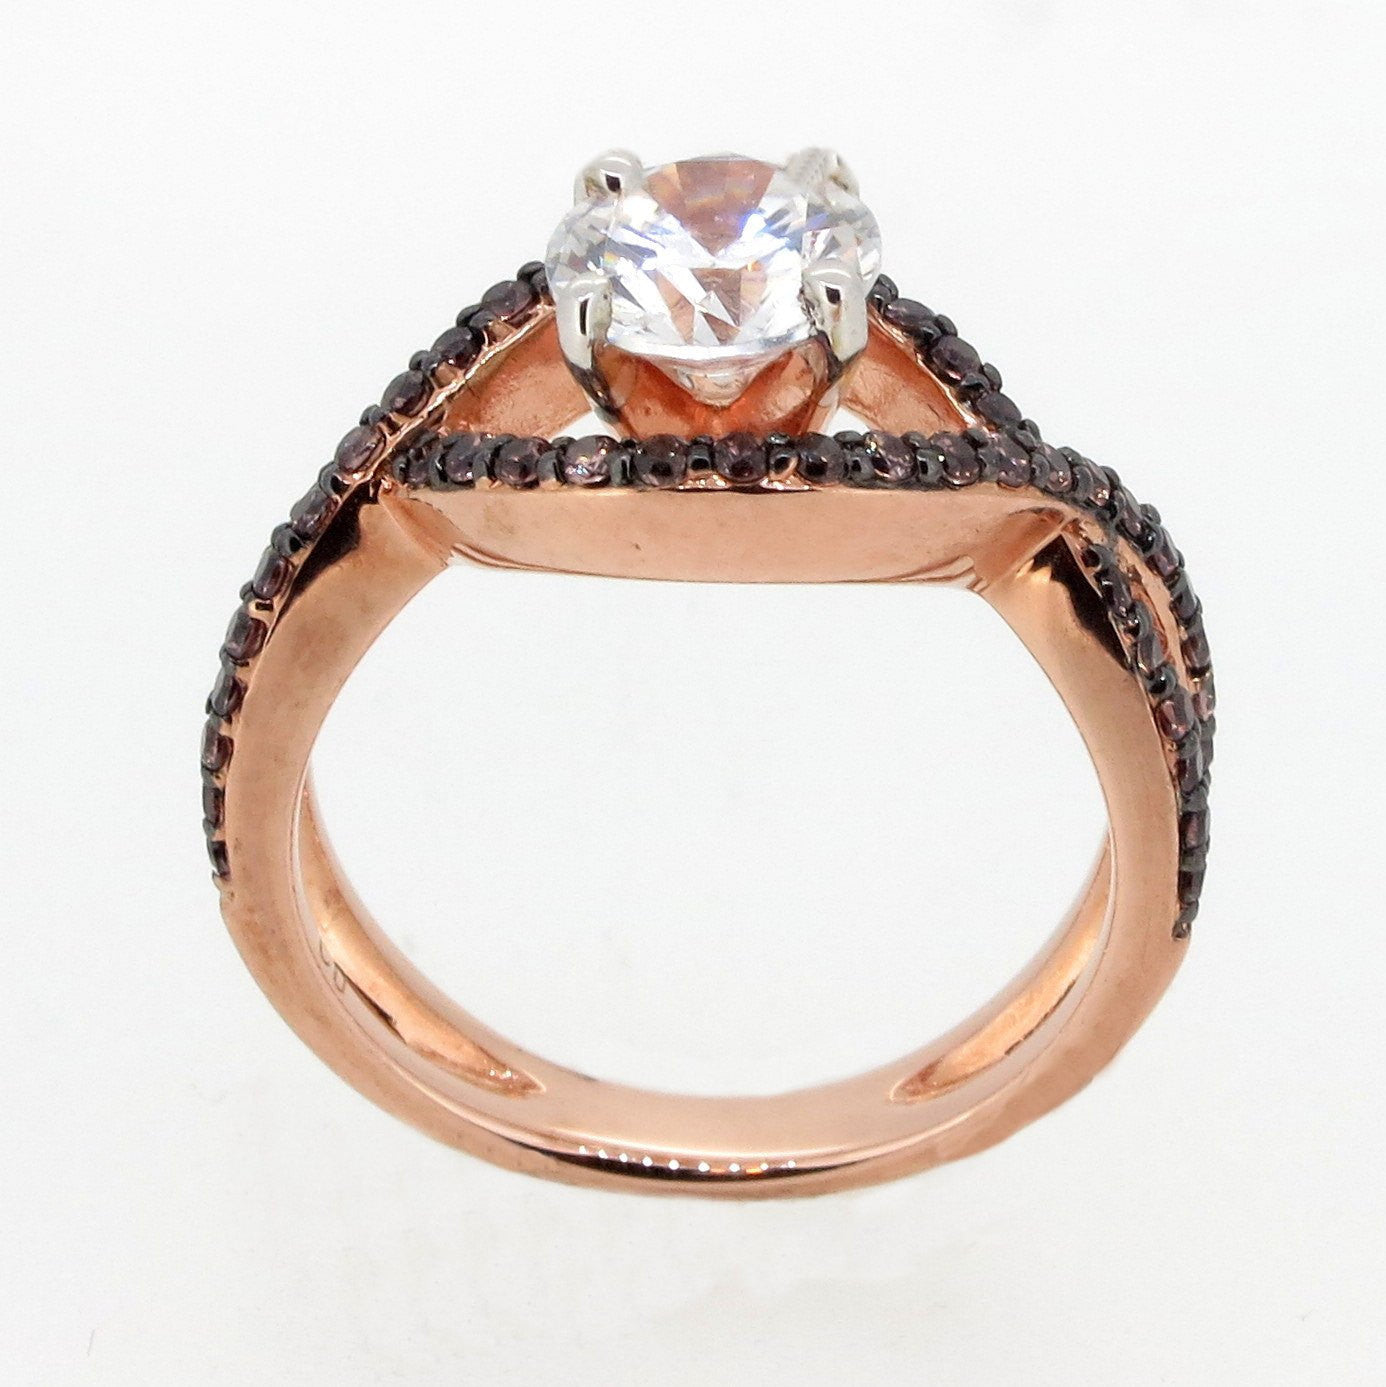 Unique Infinity Ring, Engagement / Wedding Set, Rose Gold, Chocolate Color Brown Diamonds, 1 Carat Forever Brilliant Moissanite - FB94615